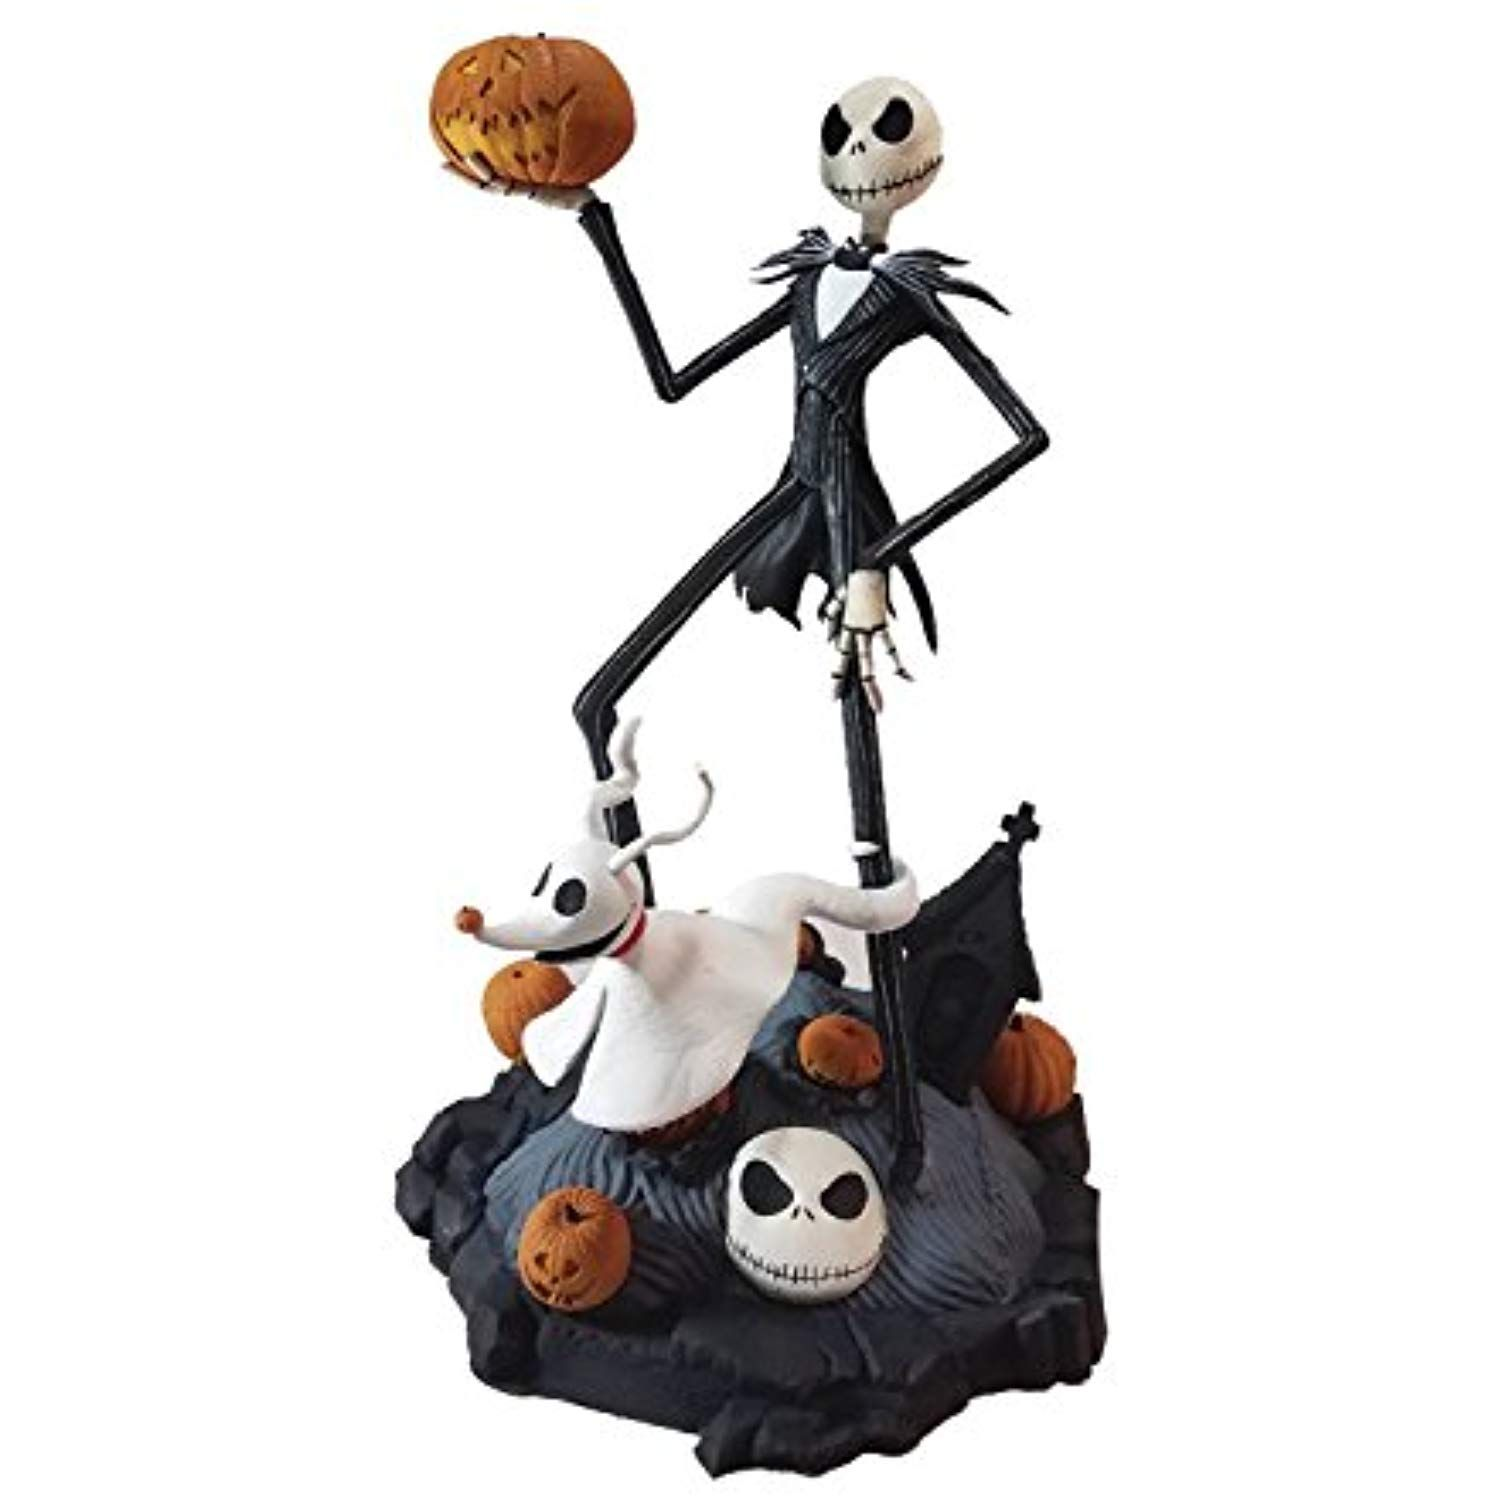 Diamond Select Nightmare Before Christmas Series 10 Pin On Grown Up Action Toy Figures